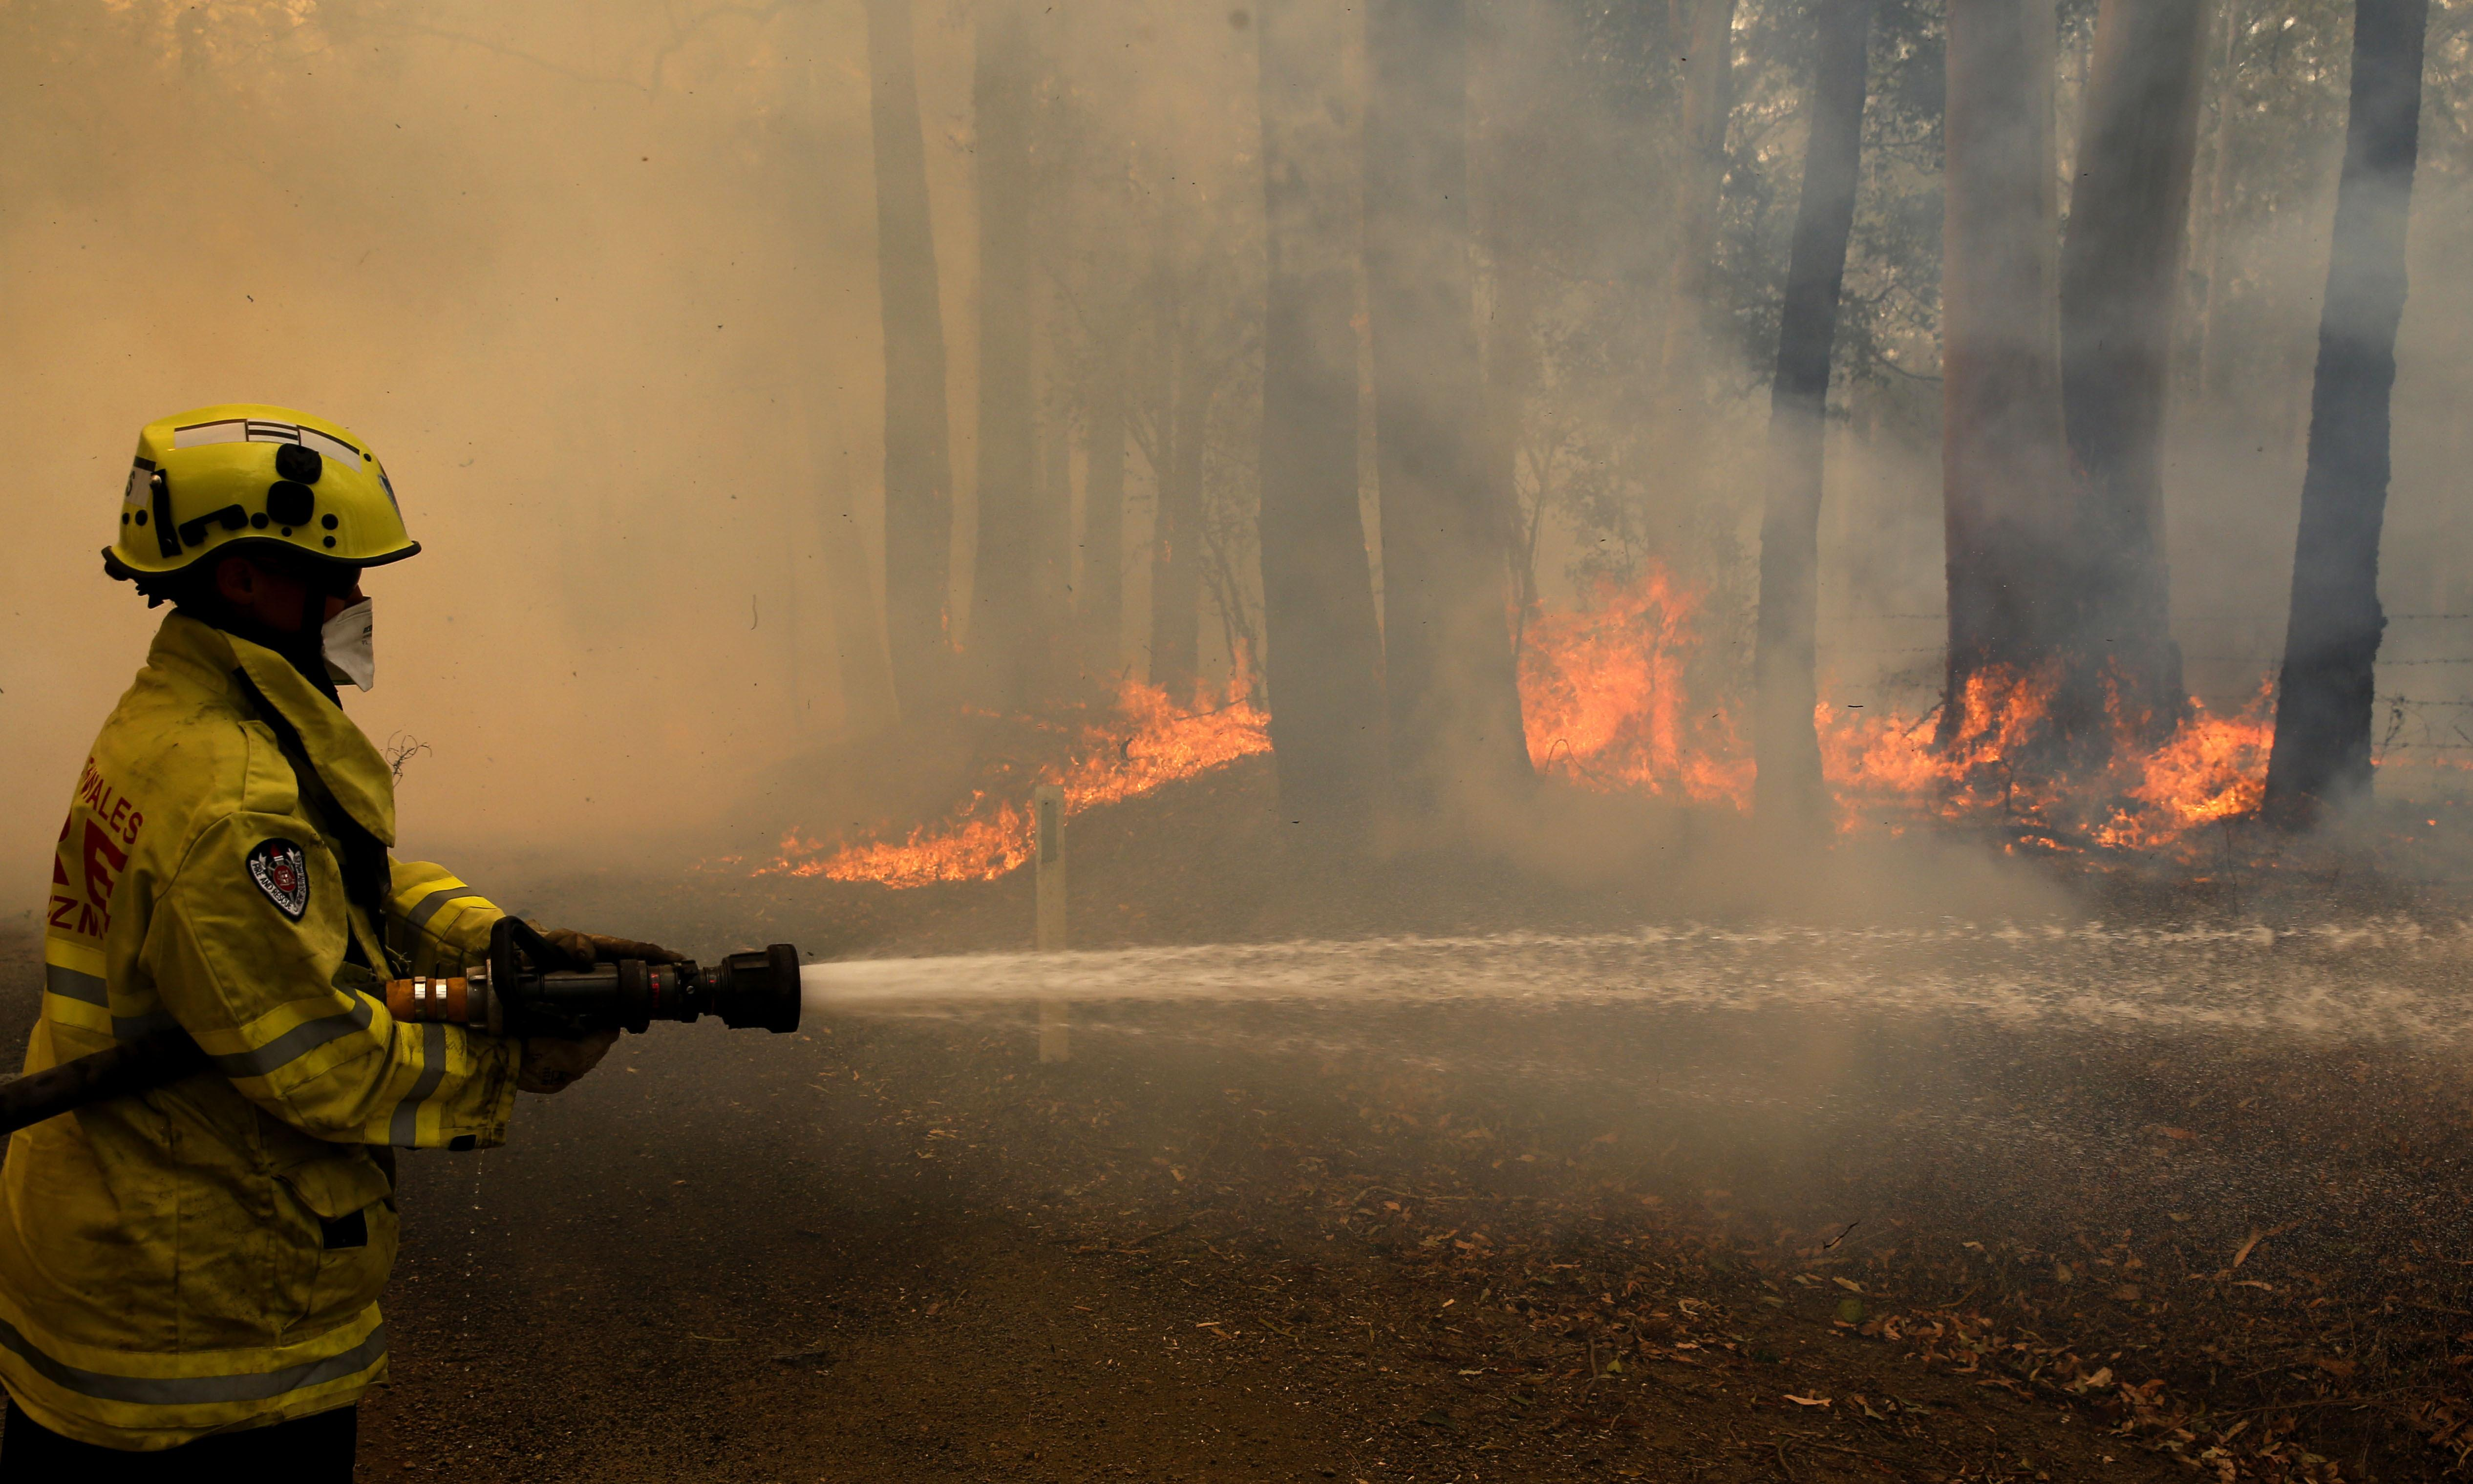 Factcheck: Is there really a green conspiracy to stop bushfire hazard reduction?